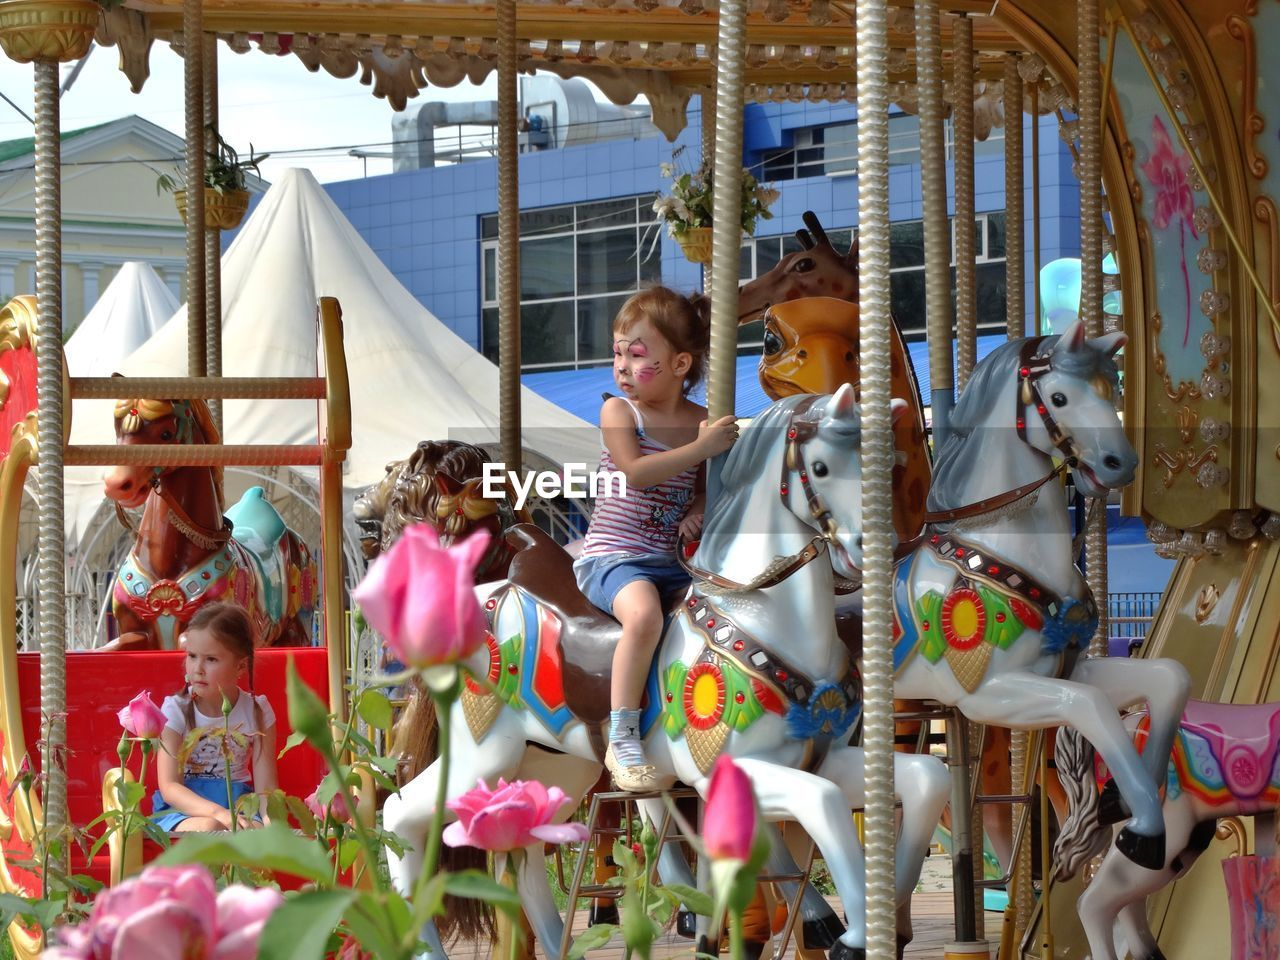 amusement park, childhood, carousel, enjoyment, amusement park ride, leisure activity, arts culture and entertainment, carousel horses, fun, girls, elementary age, outdoors, full length, merry-go-round, happiness, day, lifestyles, boys, real people, smiling, people